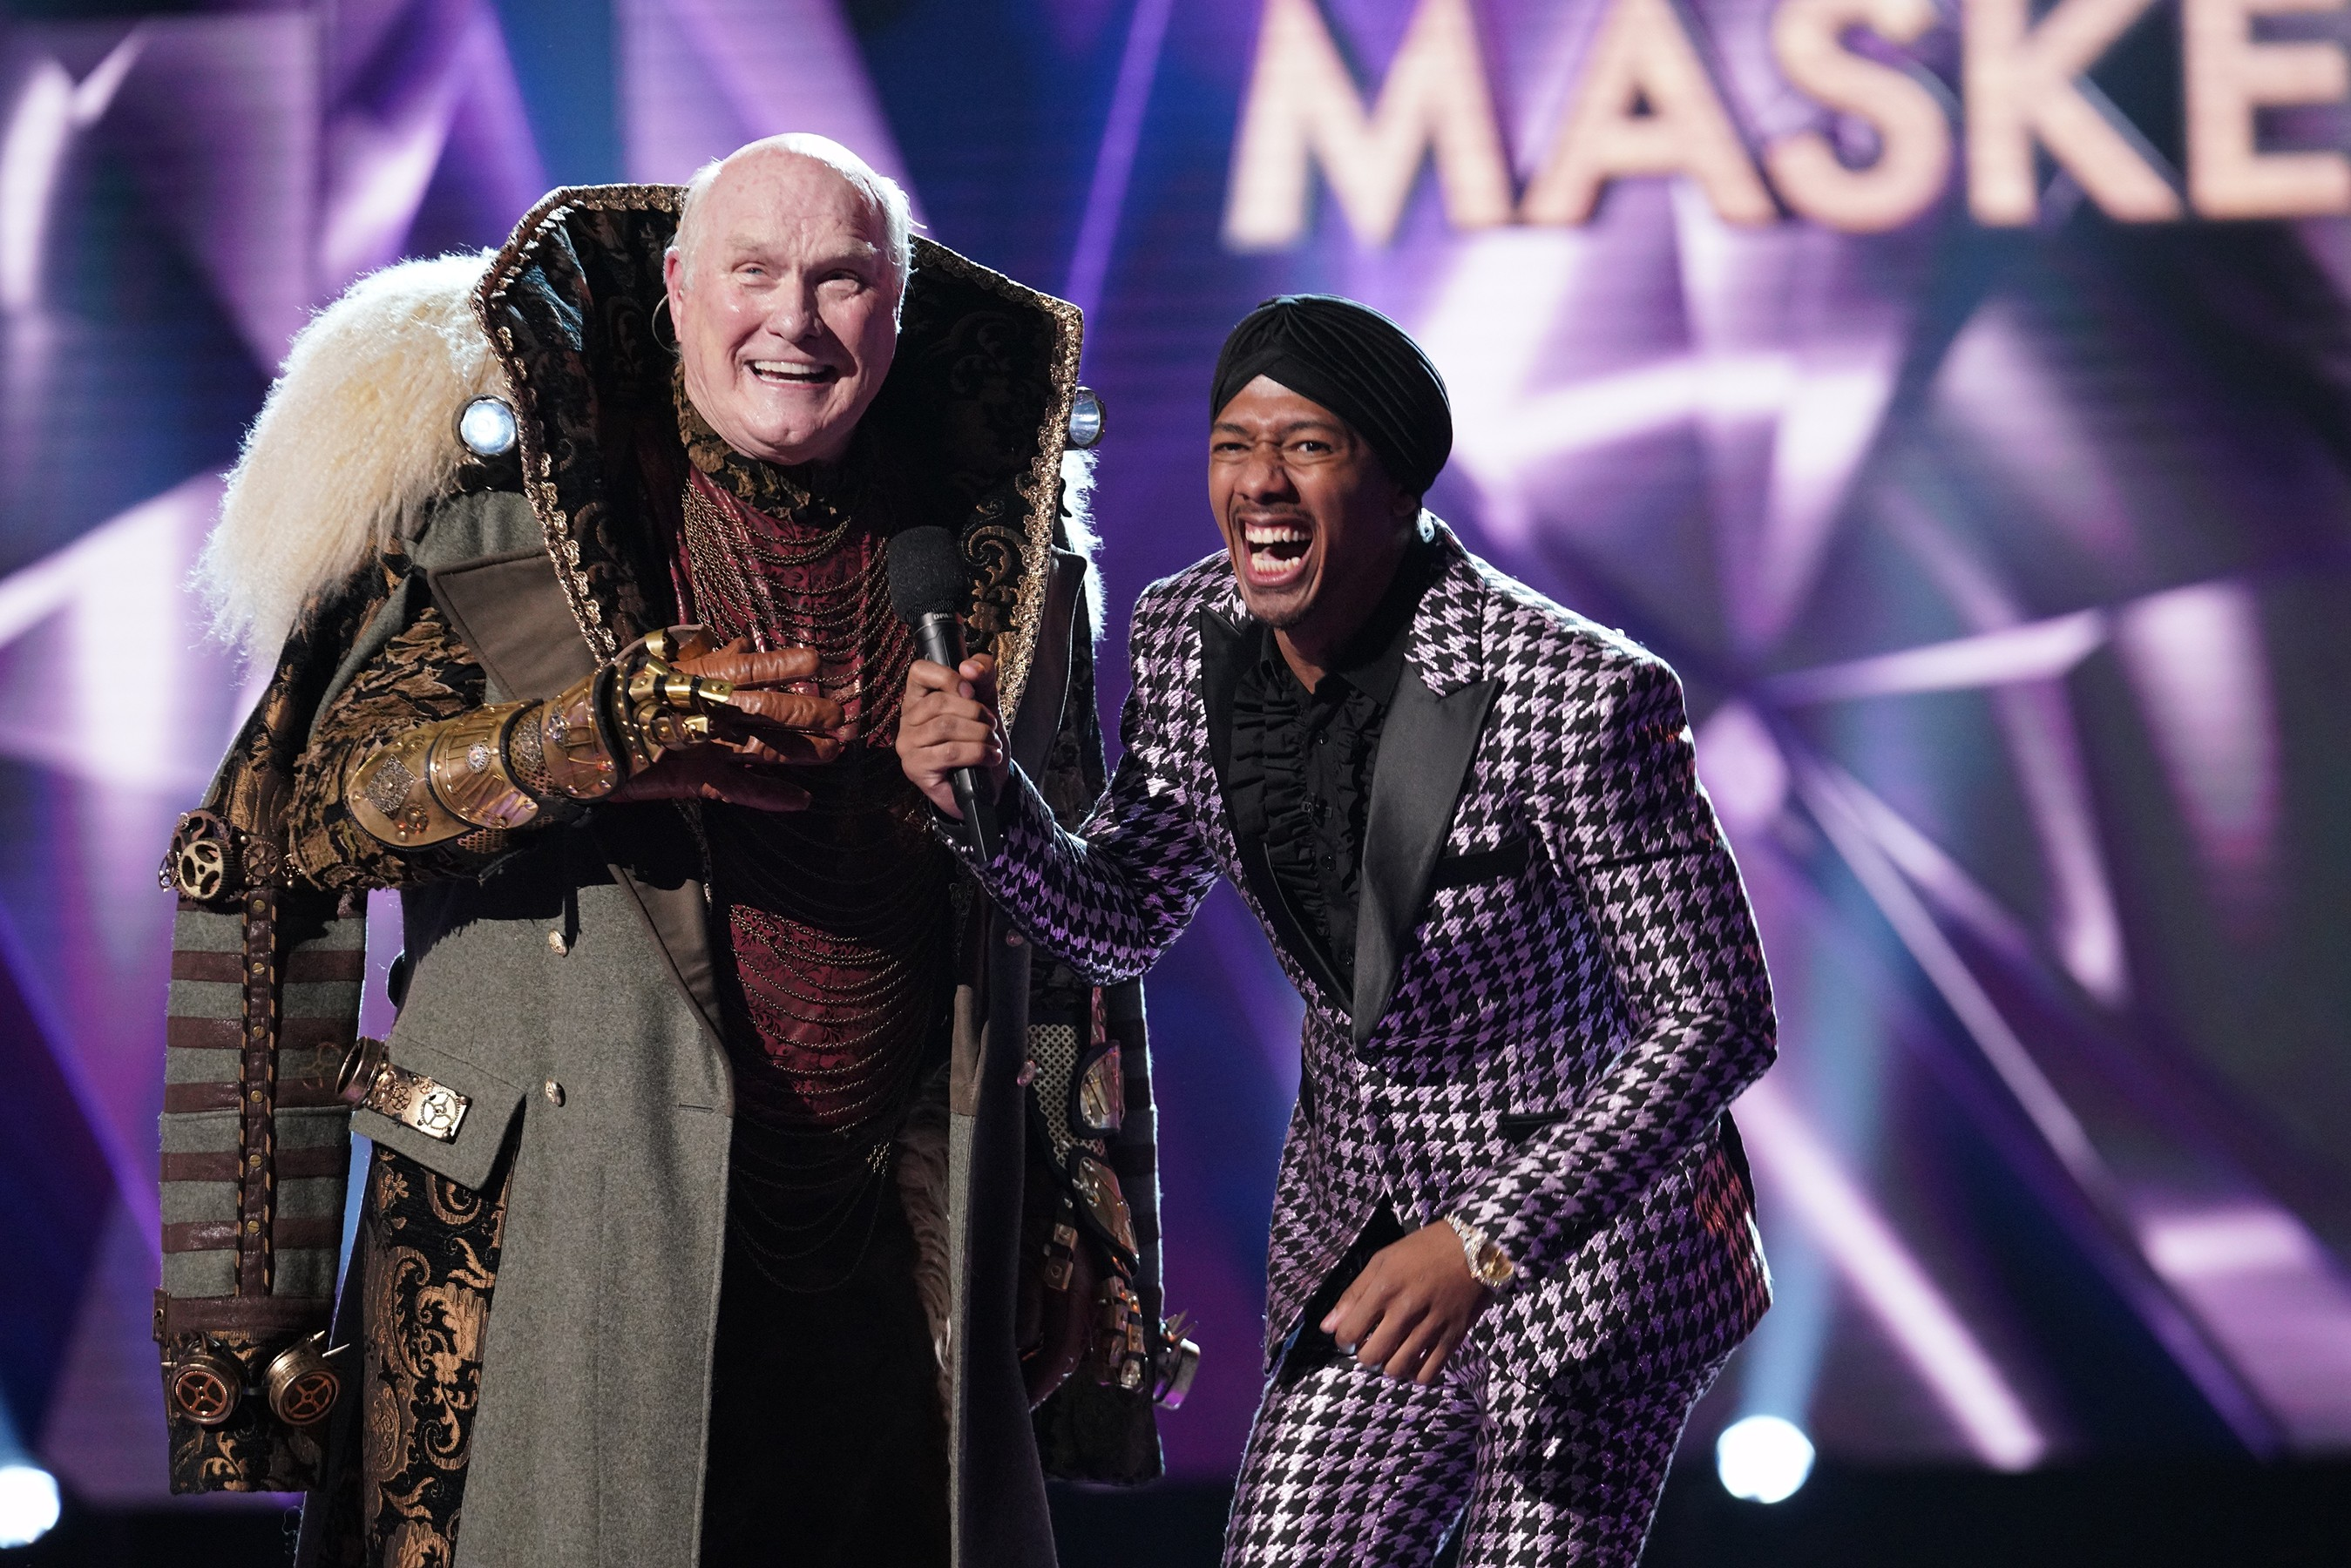 On Wednesday's Masked Singer, another unmasking, another